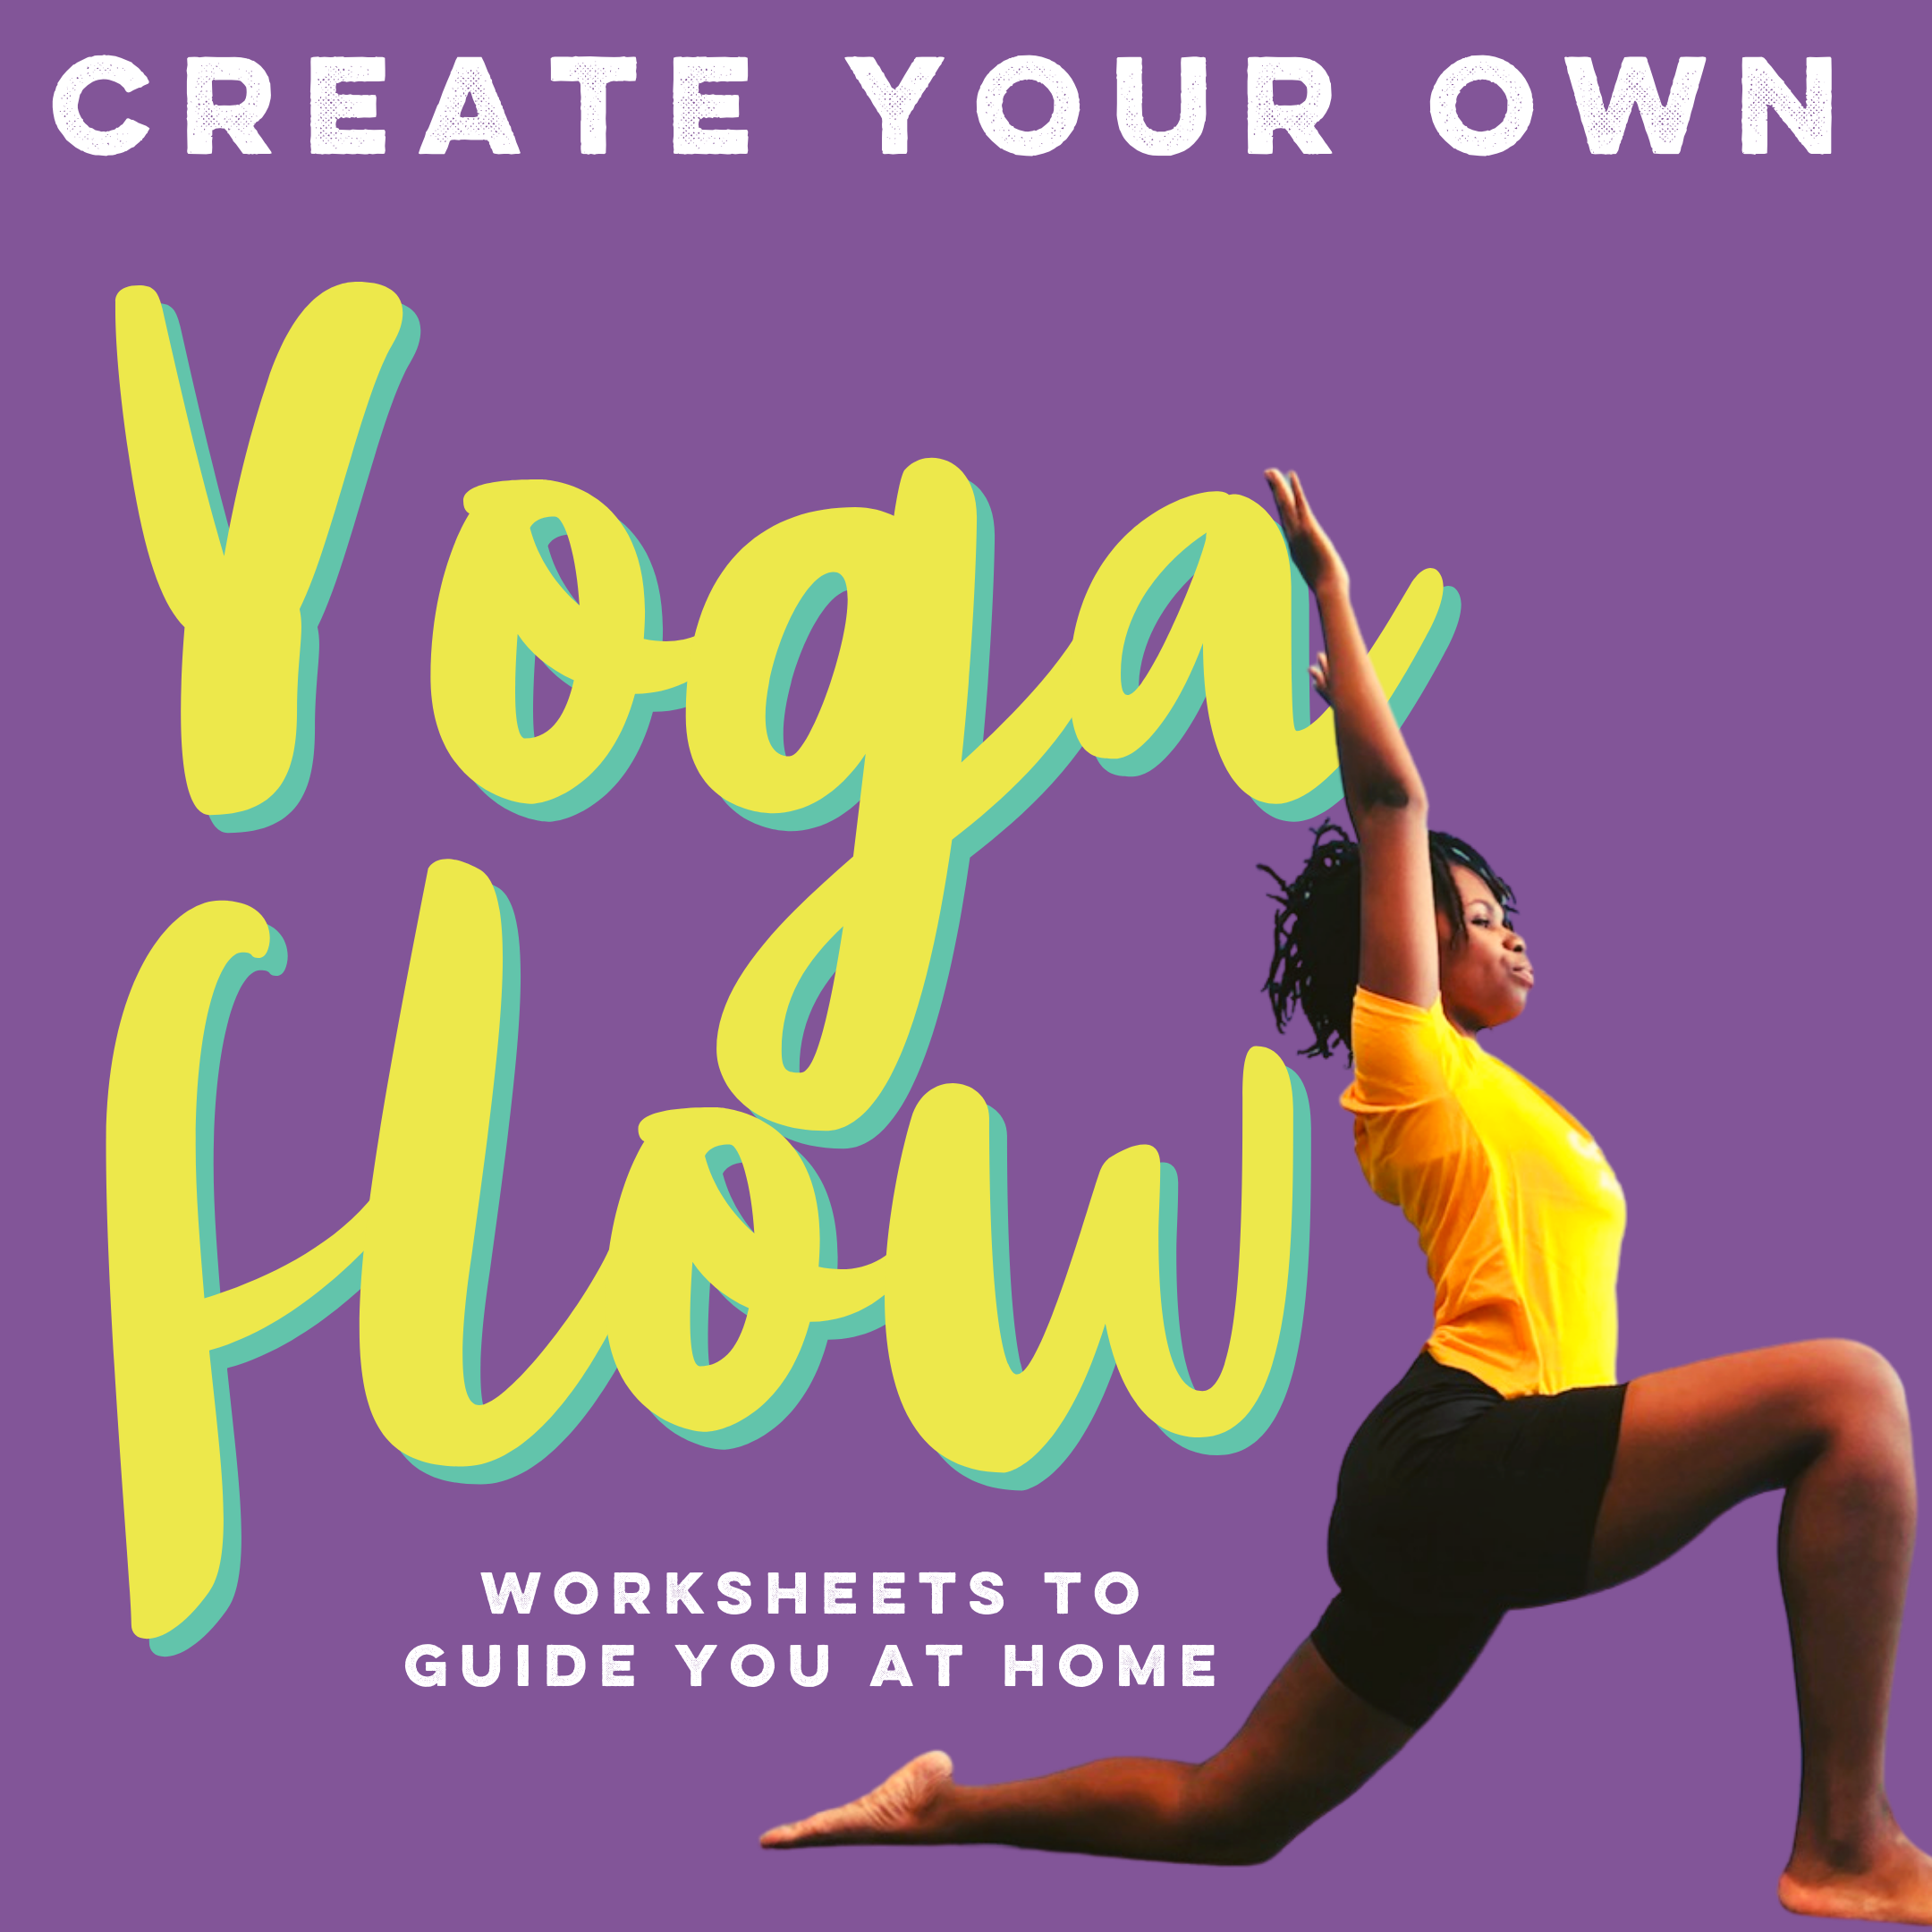 Create your own yoga flow